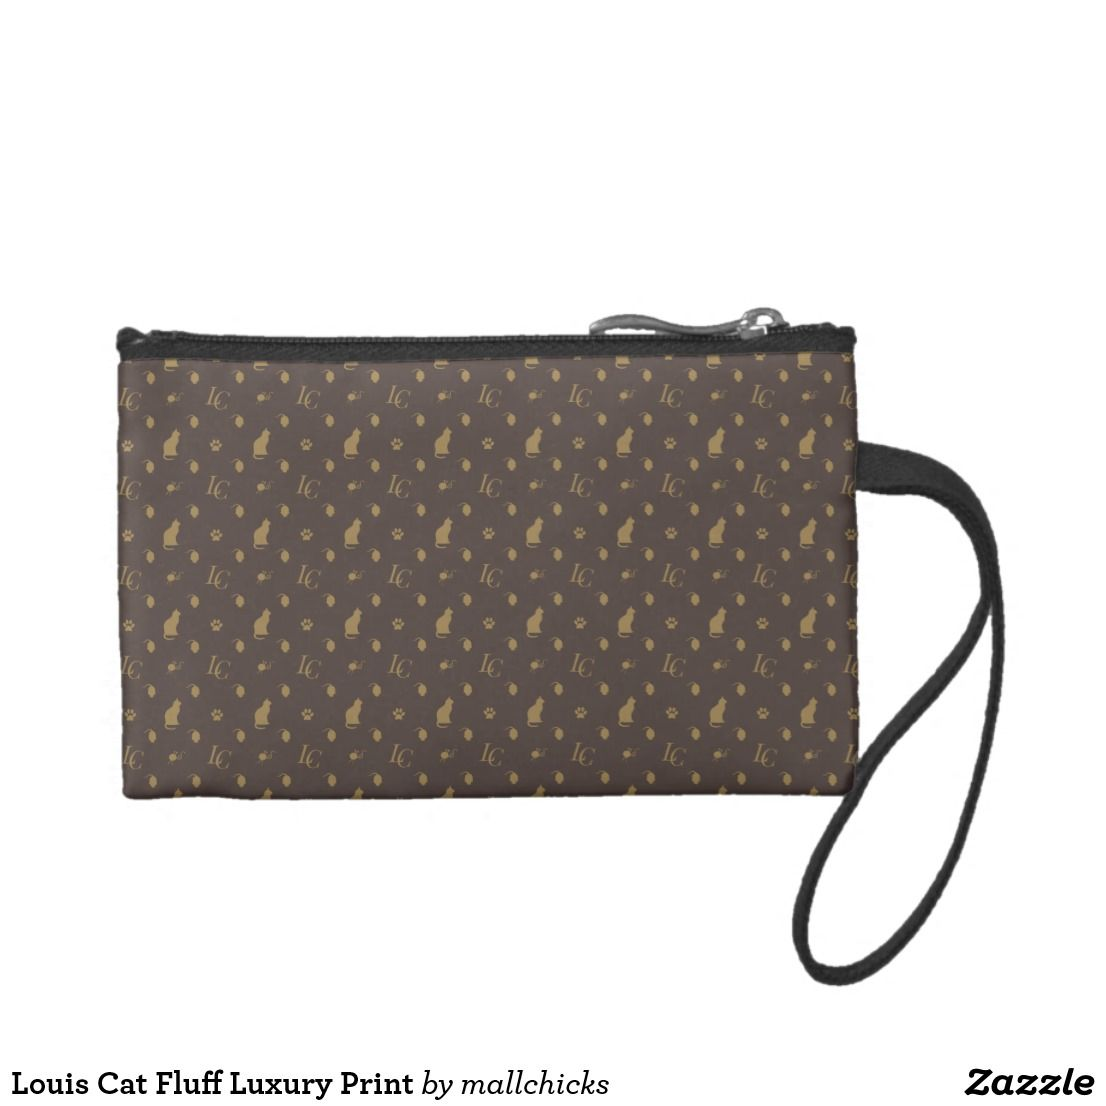 aae316a756 Louis cat fluff luxury print change purse custom accessory bags jpg  1106x1106 Fluff purses and products